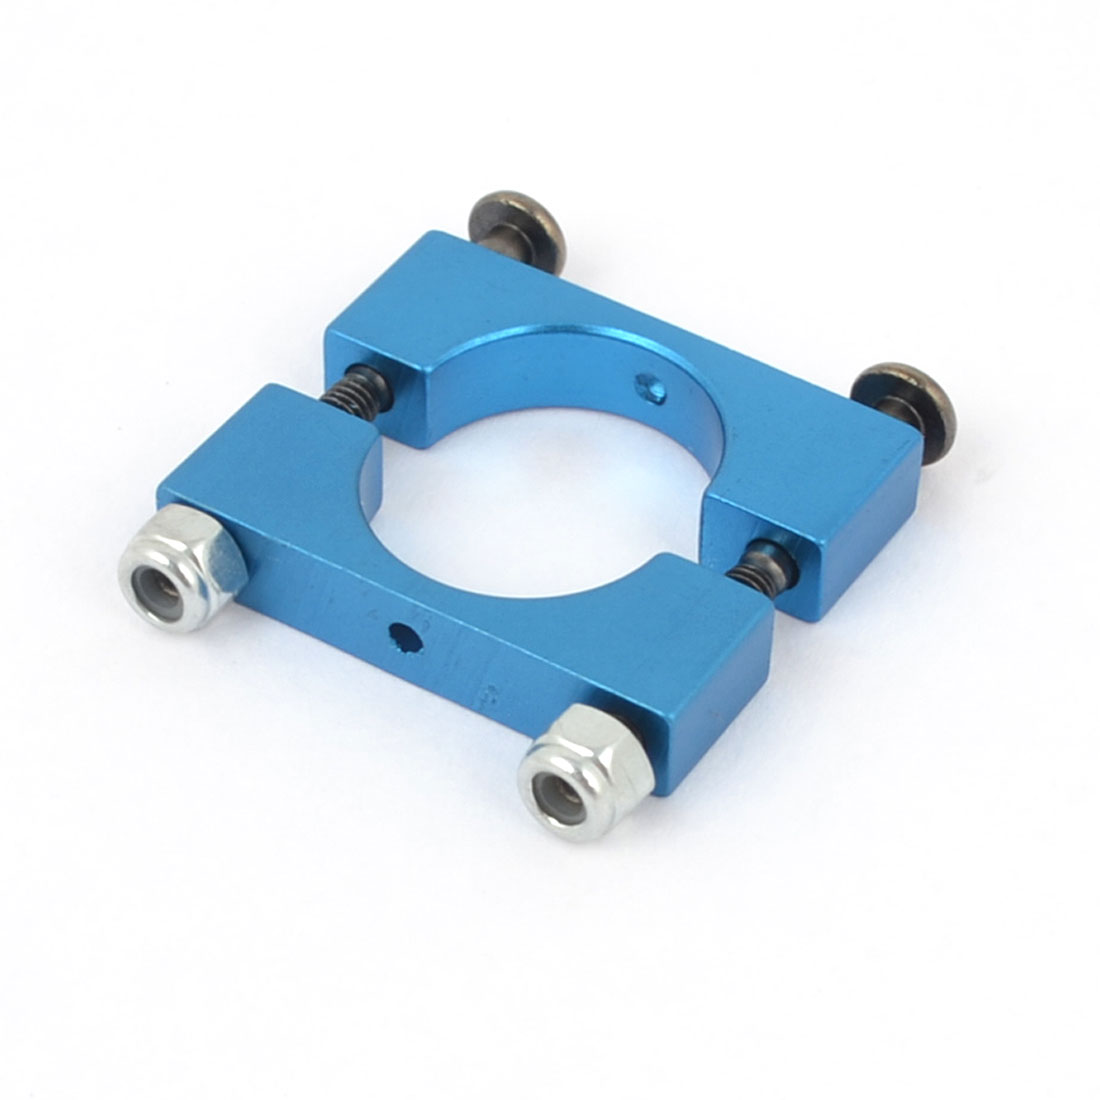 14mm Blue Aluminum Clamp for Carbon Fiber Tube Quadcopter Hexacopter Octocopter